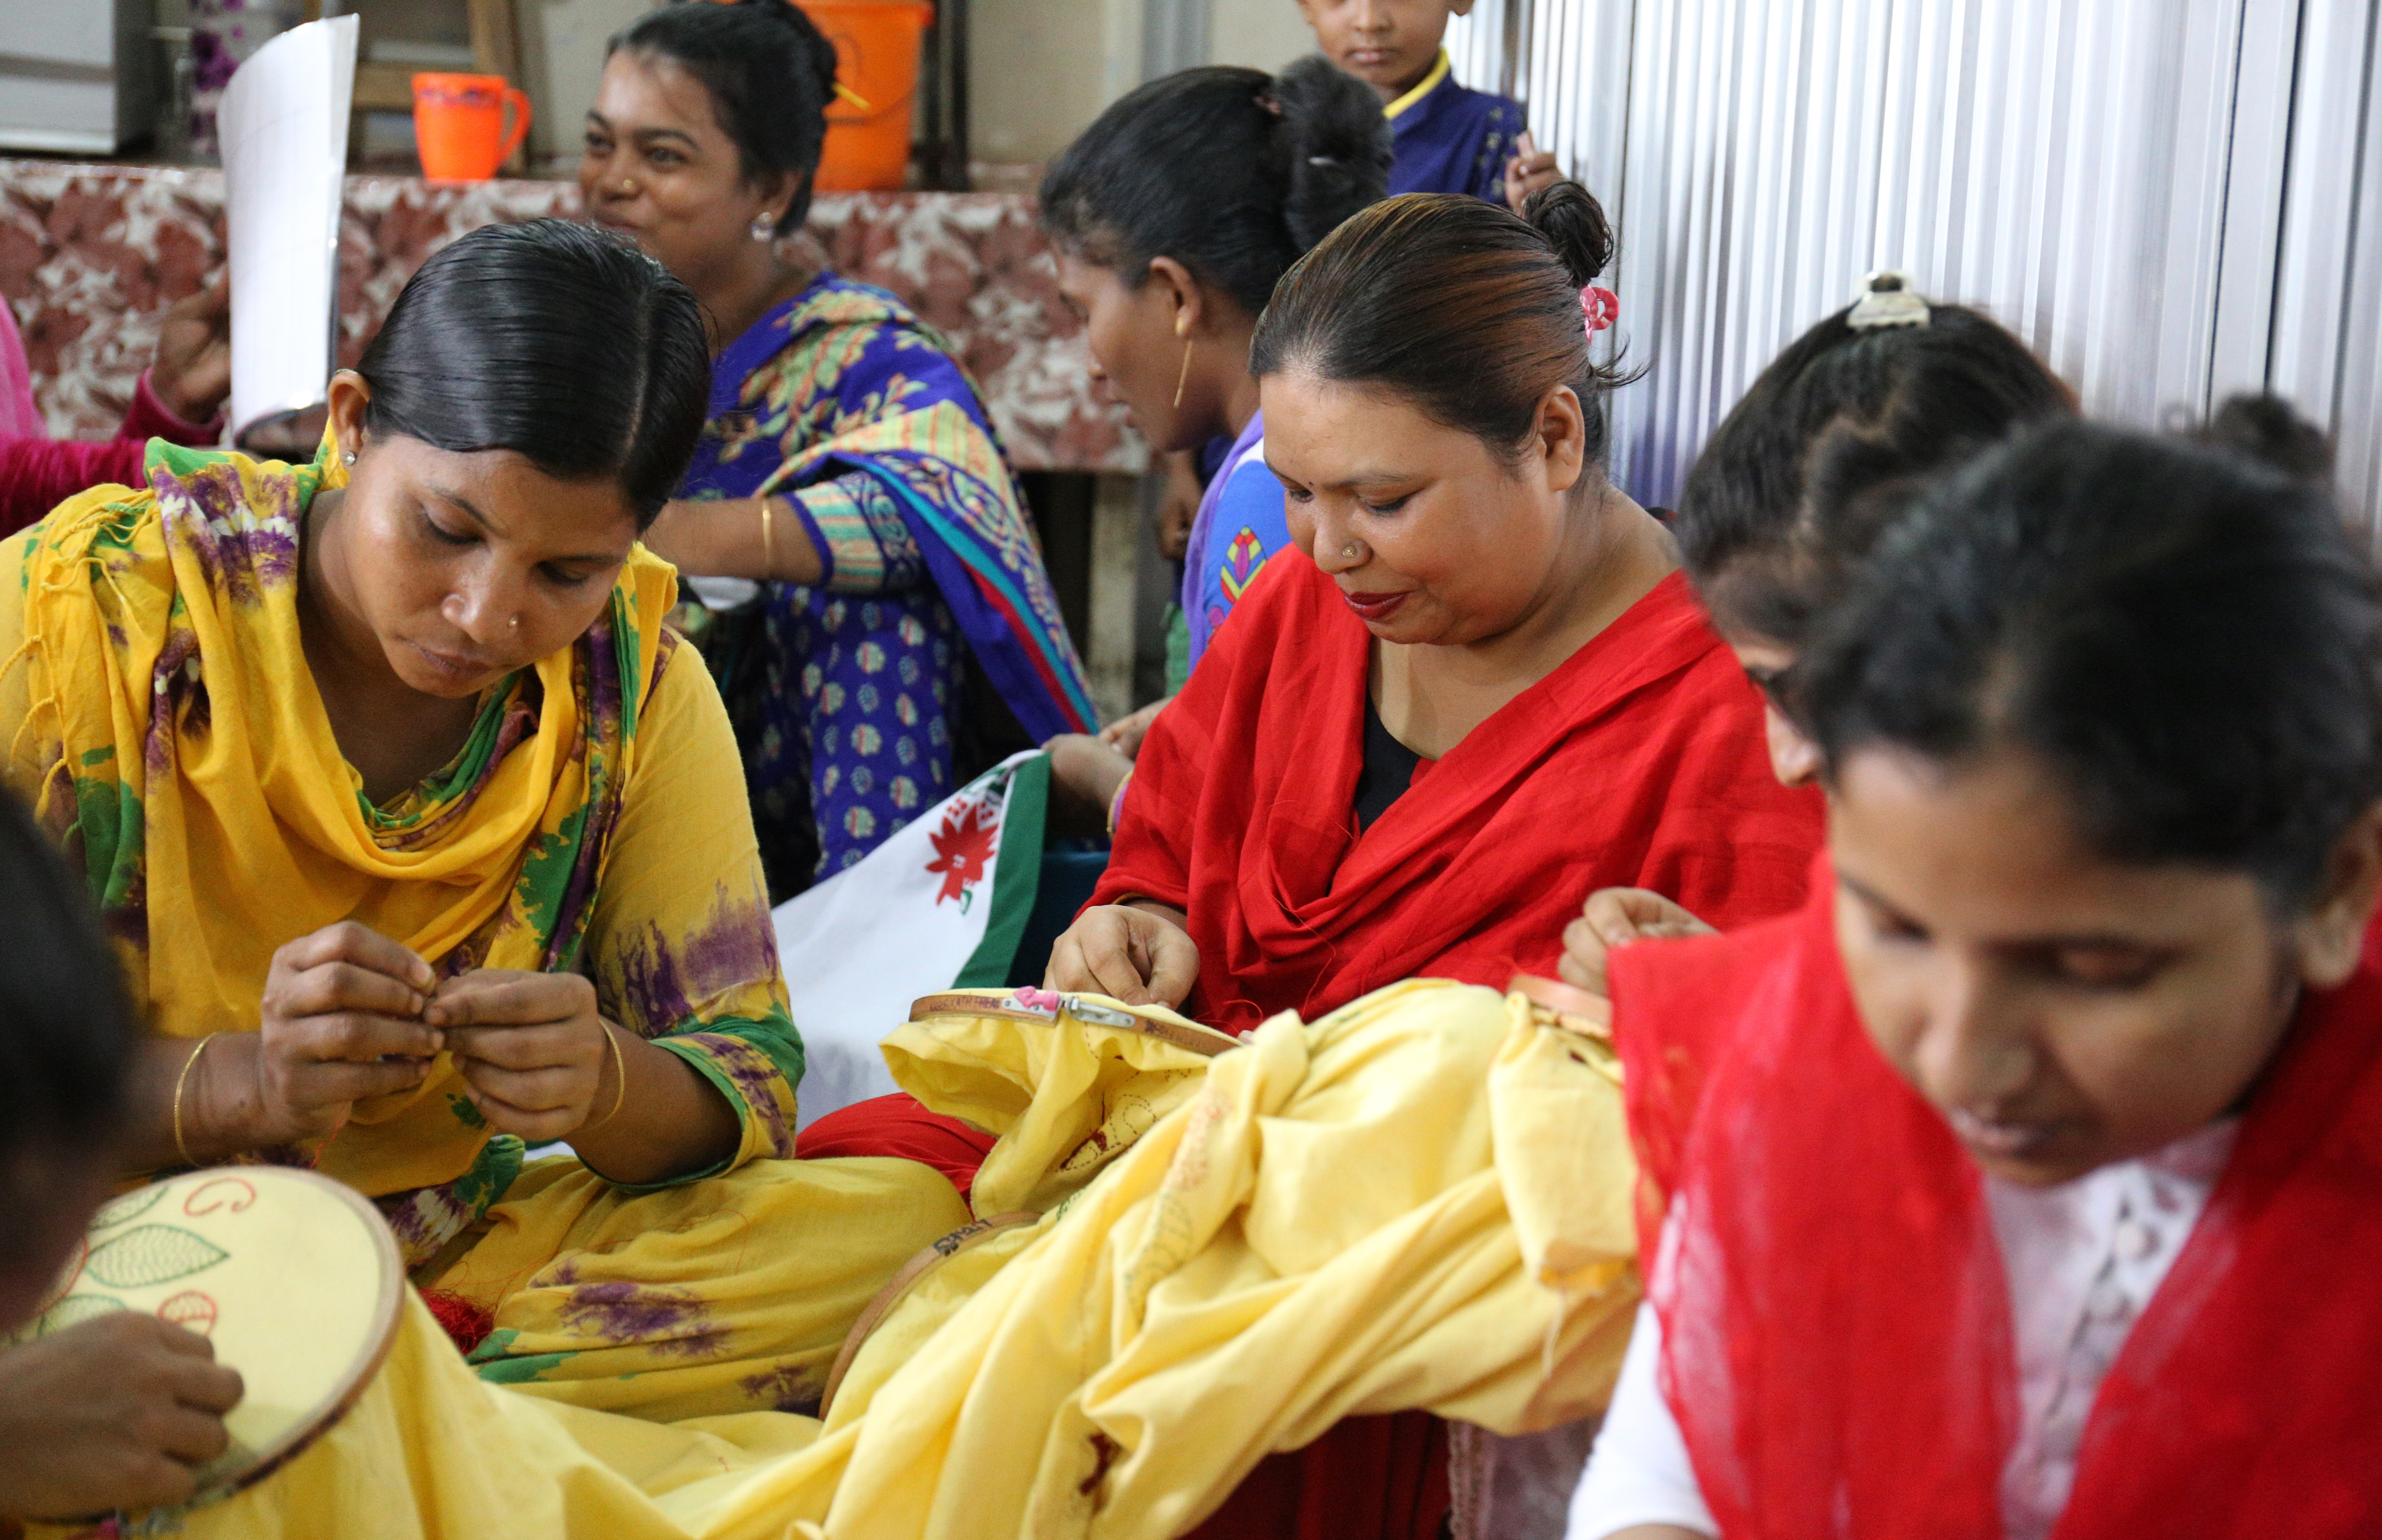 Photo Credit - Jennifer Diaz. It was taken on a trip to Bangladesh with Others-Trade for Hope. The Salvation Army